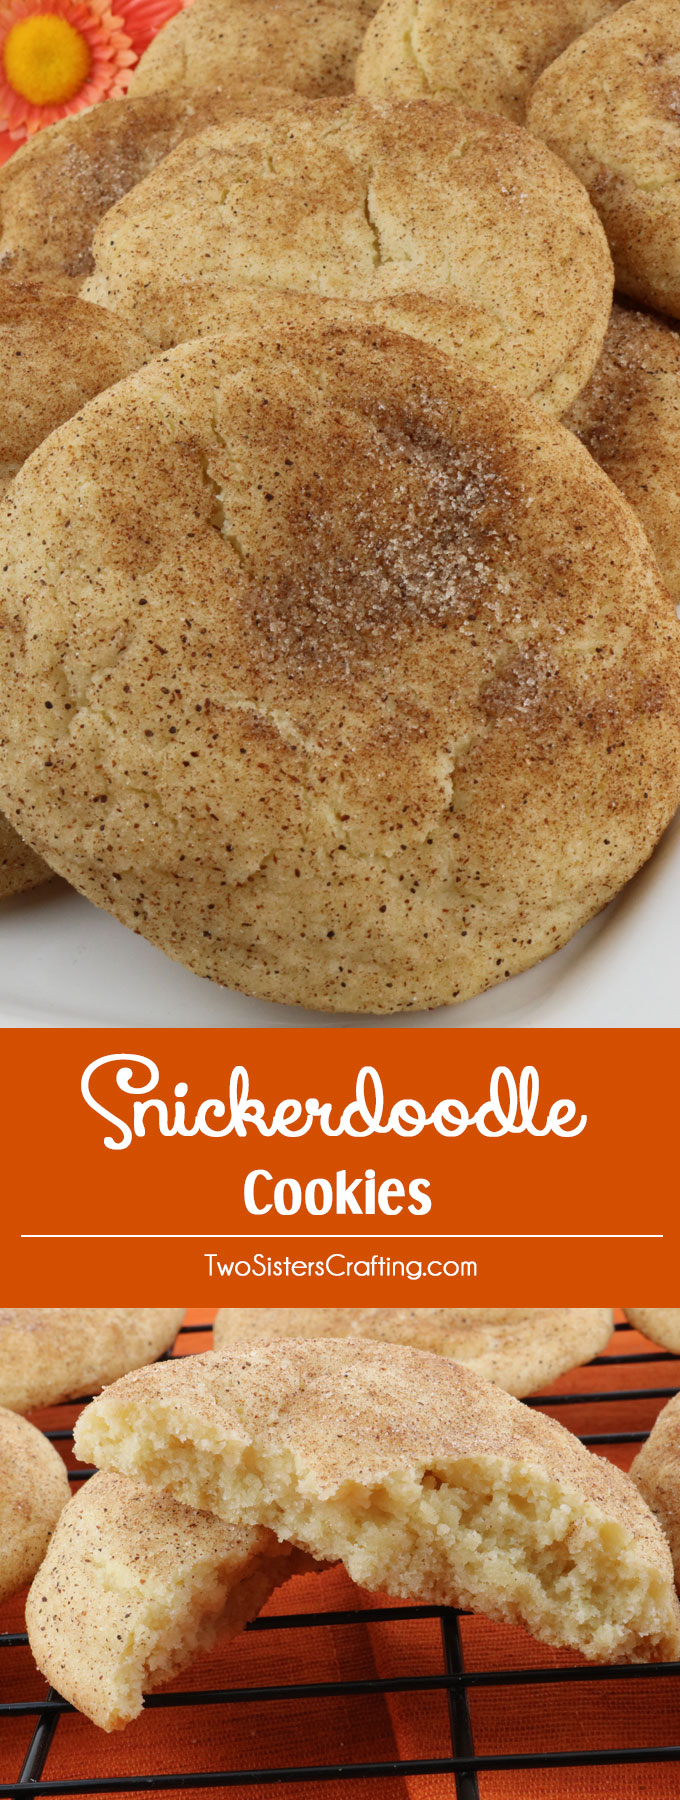 Snickerdoodle Cookies - these soft, chewy, fluffy cinnamon cookies are easy to make and delicious to eat. This classic cookie recipe is a keeper. Snickerdoodles are always a crowd favorite and this cookie recipe is no exception. Pin this melt in your mouth cinnamon cookie recipe for later and follow us for more yummy cookie recipes.